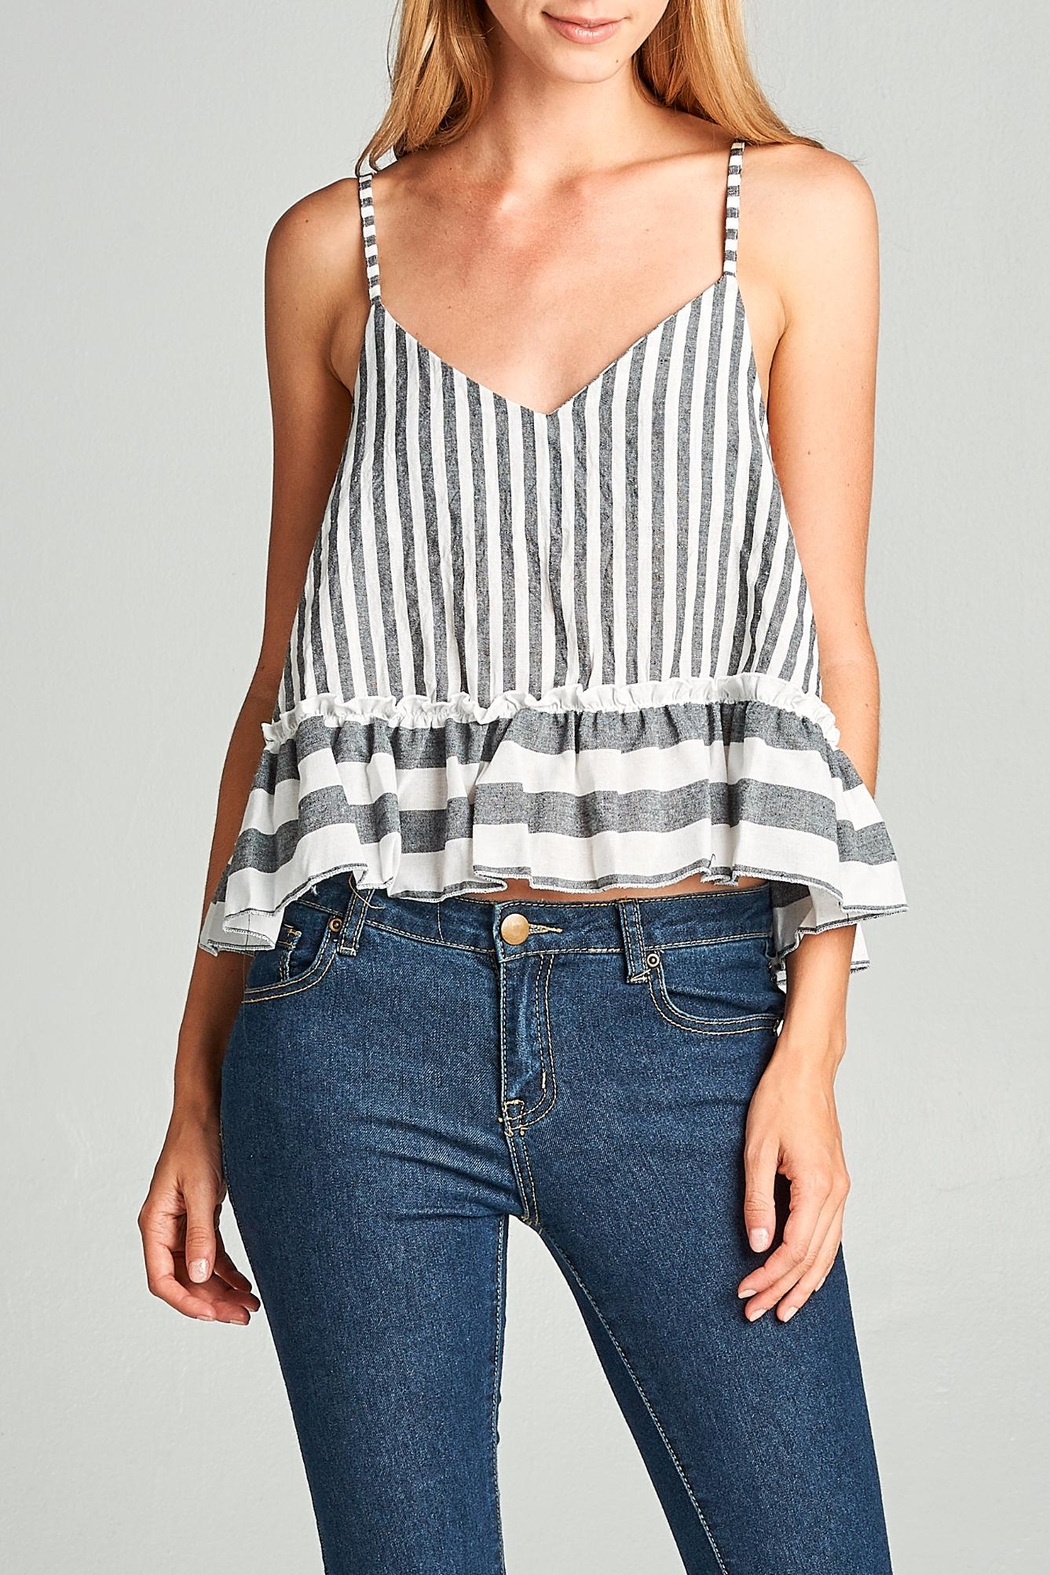 Racine Striped Crop Top - Front Cropped Image